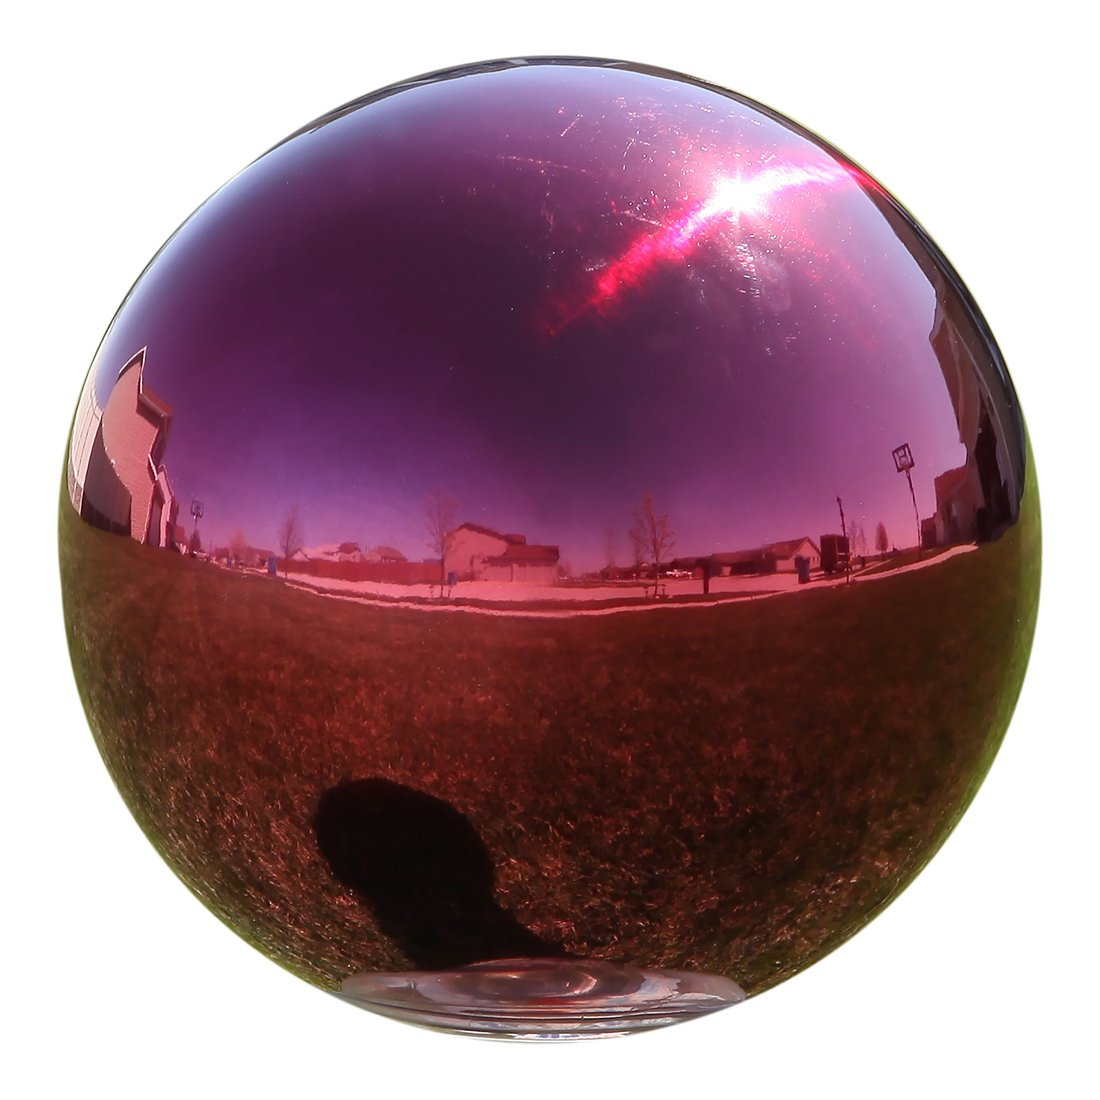 Lily's Home Stainless Steel Gazing Globe Mirror Ball, Colorful and Shiny Addition to Any Garden or Home, Ideal As a Housewarming Gift, Sparking Red (10'' Diameter)